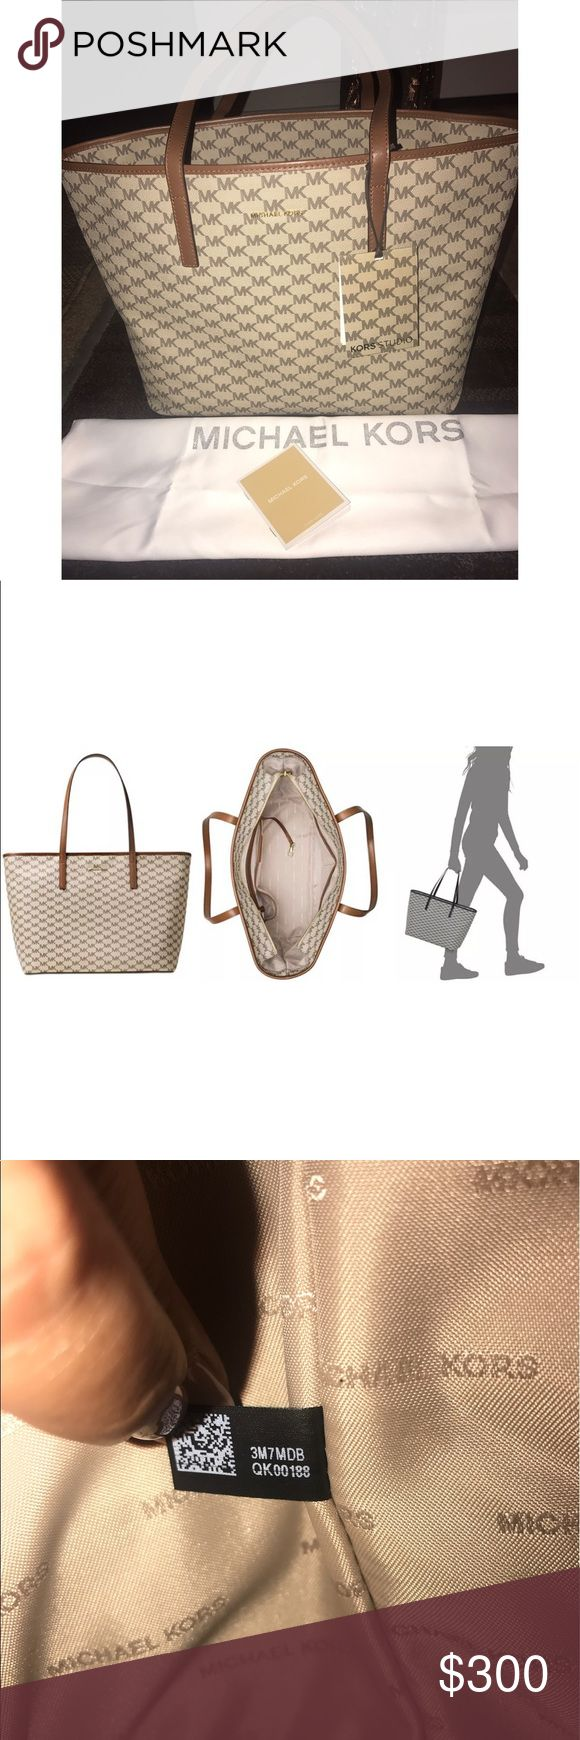 """New Signature Michael Kors Lrg Emry Tote NWT Originally $328.00 - Large Emry tote bag, purse, nwt, perfect size for carry on while traveling. Feel free to ask questions!  17""""L x 11.5""""H x 7""""W Double leather handles  ( 10"""" drop)  Gorgeous durable PVC MK monogram with leather trim Polished gold hardware & buckle accents  Signature MK logo at front Michael Kors logo lining  Cellphone/multi-function pockets Ring to clip an accessory/key/FOB  Care Instructions card Original MK price tag Dust bag…"""